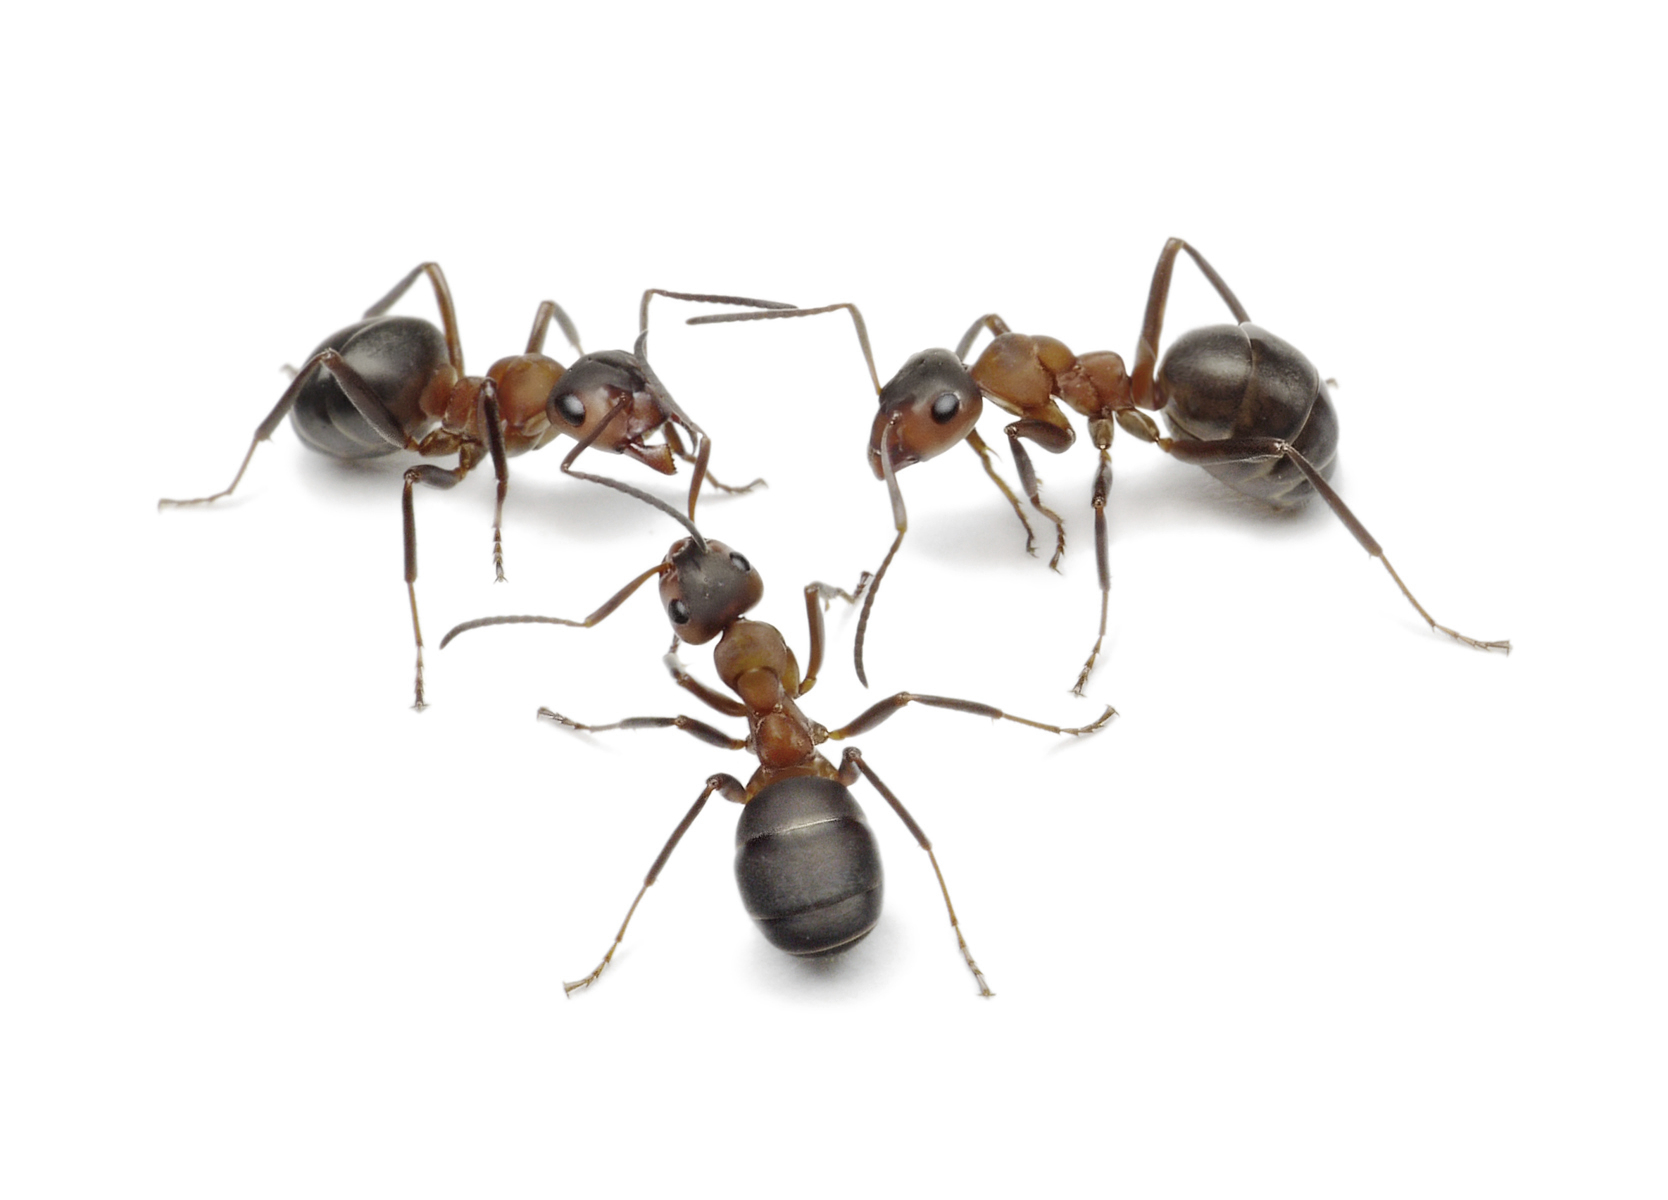 Don't Be The One Caught in the Ant Trap